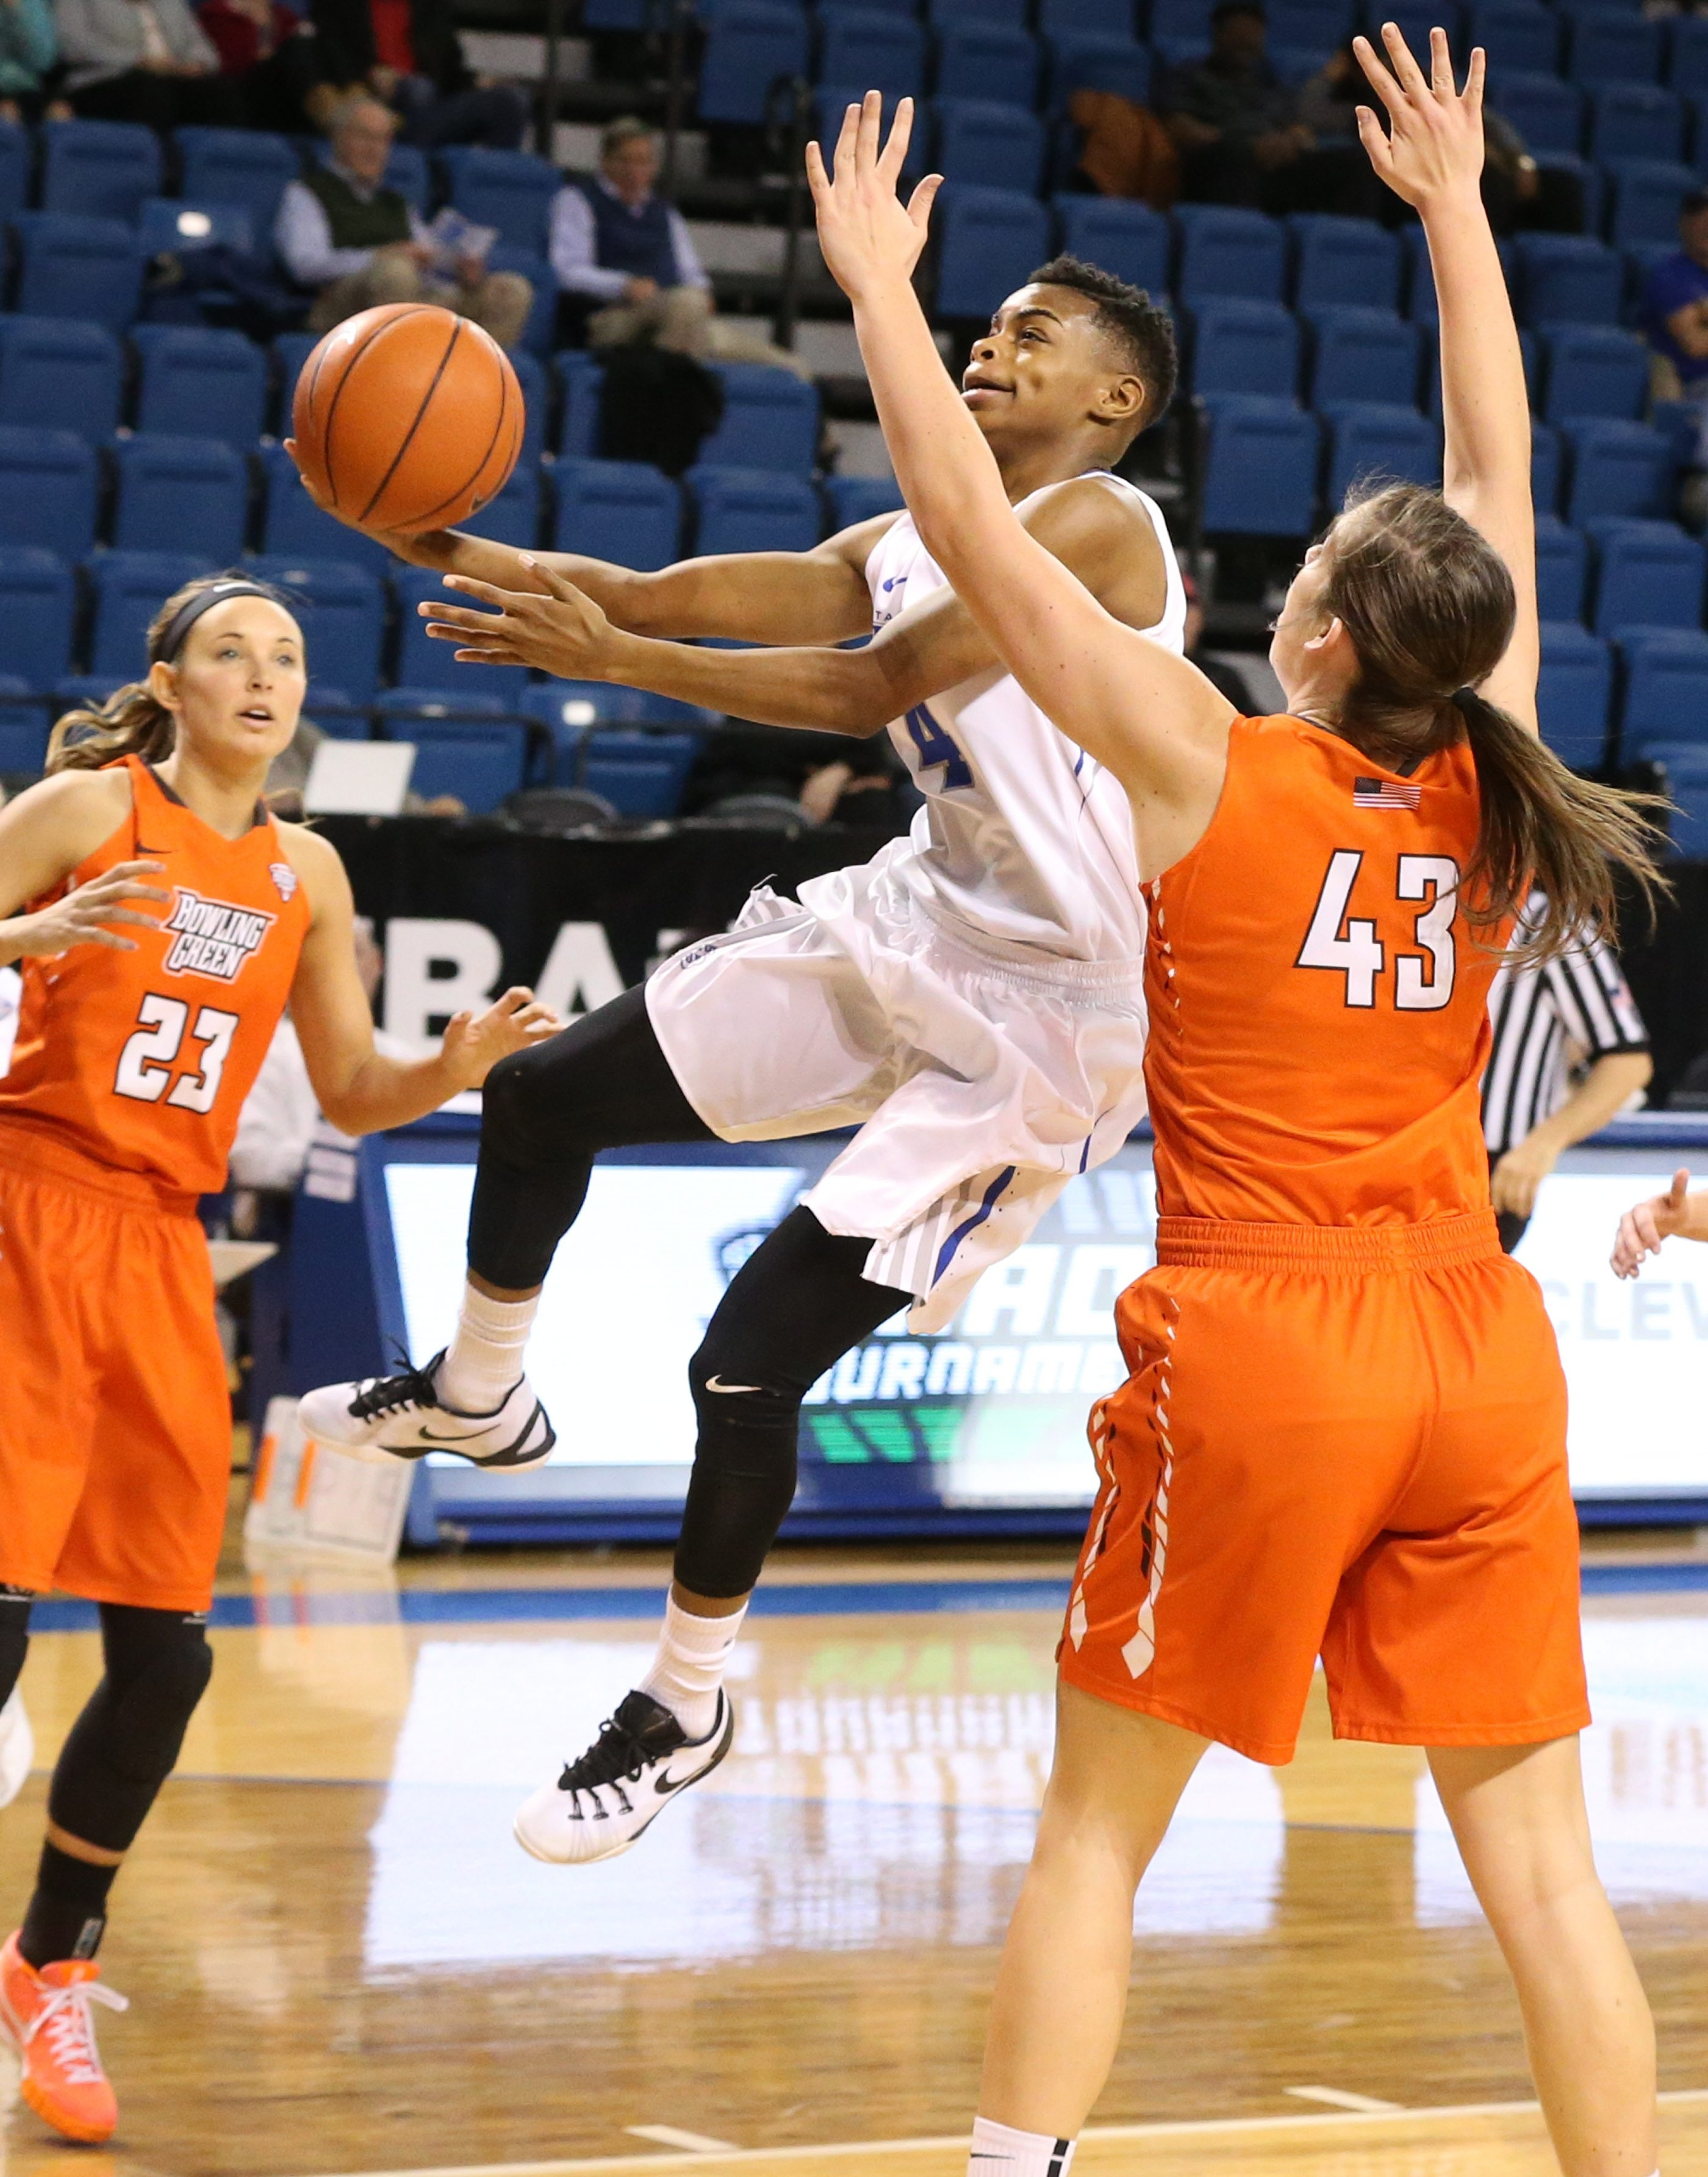 UB's all-conference guard Joanna Smith, center, goes up for a shot against Bowling Green in the MAC Tournament first-round game Monday night at Alumni Arena.